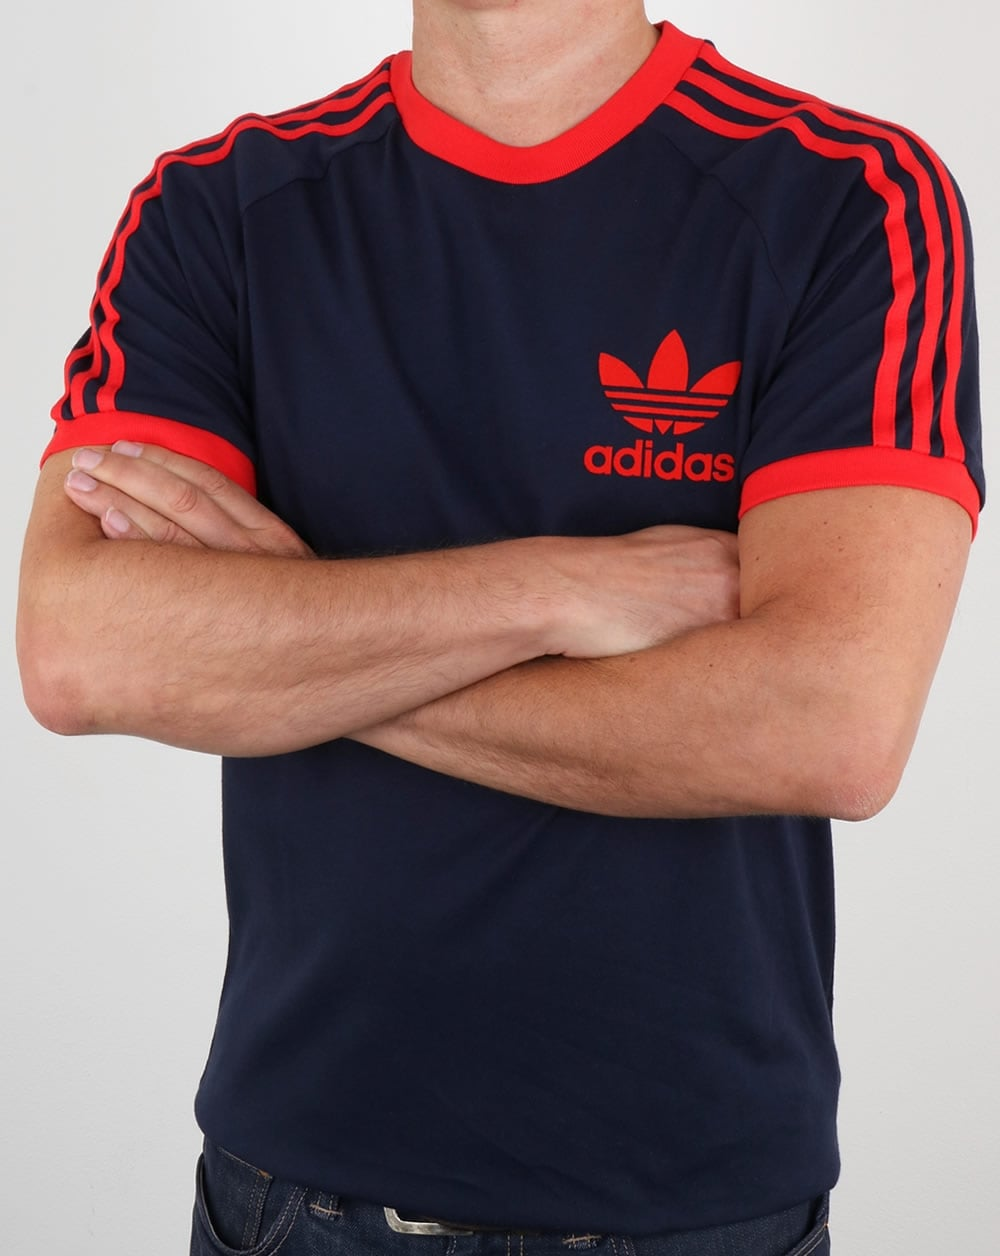 adidas t shirt navy red california 3 stripes. Black Bedroom Furniture Sets. Home Design Ideas